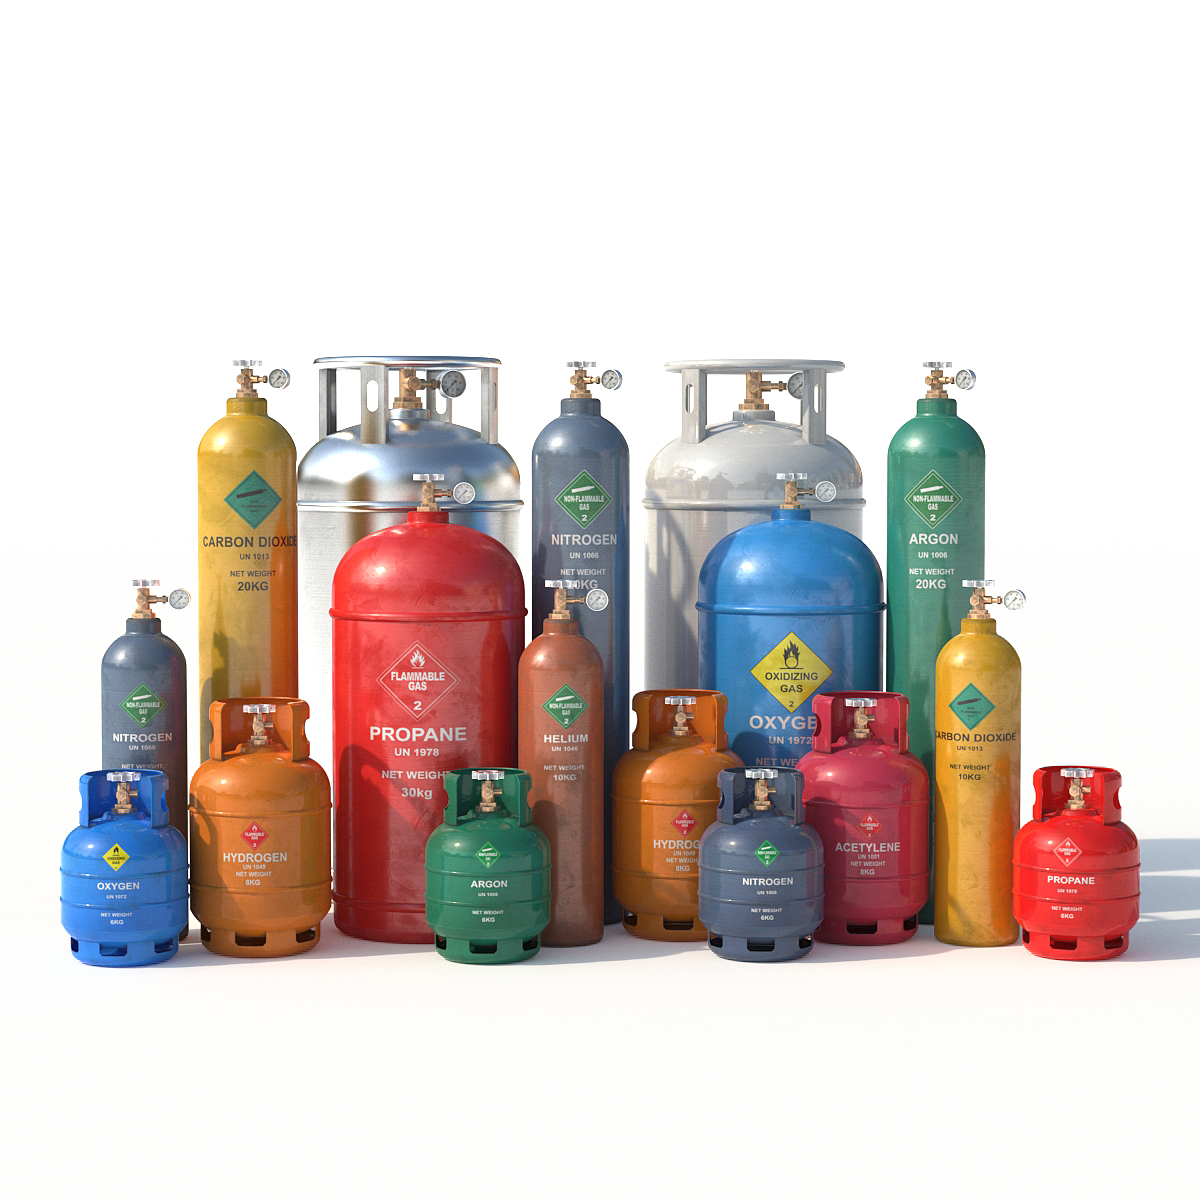 Safe Storage of Compressed Gas Cylinders, occupational health , occupational safety , occupational security , occupational environment , occupational environmental , occupational hygiene , occupational food , occupational quality , occupational online , occupational distant , occupational digital , occupational e-learning , occupational training , occupational awareness , occupational session , occupational course , occupational , occupational , health occupational , health safety , health security , health environment , health environmental , health hygiene , health food , health quality , health online , health distant , health digital , health e-learning , health training , health awareness , health session , health course , health , health , safety occupational , safety health , safety security , safety environment , safety environmental , safety hygiene , safety food , safety quality , safety online , safety distant , safety digital , safety e-learning , safety training , safety awareness , safety session , safety course , safety , safety , security occupational , security health , security safety , security environment , security environmental , security hygiene , security food , security quality , security online , security distant , security digital , security e-learning , security training , security awareness , security session , security course , security , security , environment occupational , environment health , environment safety , environment security , environment environmental , environment hygiene , environment food , environment quality , environment online , environment distant , environment digital , environment e-learning , environment training , environment awareness , environment session , environment course , environment , environment , environmental occupational , environmental health , environmental safety , environmental security , environmental environment , environmental hygiene , environmental food , environmental quality , environmental online , environmental distant , environmental digital , environmental e-learning , environmental training , environmental awareness , environmental session , environmental course , environmental , environmental , hygiene occupational , hygiene health , hygiene safety , hygiene security , hygiene environment , hygiene environmental , hygiene food , hygiene quality , hygiene online , hygiene distant , hygiene digital , hygiene e-learning , hygiene training , hygiene awareness , hygiene session , hygiene course , hygiene , hygiene , food occupational , food health , food safety , food security , food environment , food environmental , food hygiene , food quality , food online , food distant , food digital , food e-learning , food training , food awareness , food session , food course , food , food , quality occupational , quality health , quality safety , quality security , quality environment , quality environmental , quality hygiene , quality food , quality online , quality distant , quality digital , quality e-learning , quality training , quality awareness , quality session , quality course , quality , quality , online occupational , online health , online safety , online security , online environment , online environmental , online hygiene , online food , online quality , online distant , online digital , online e-learning , online training , online awareness , online session , online course , online , online , distant occupational , distant health , distant safety , distant security , distant environment , distant environmental , distant hygiene , distant food , distant quality , distant online , distant digital , distant e-learning , distant training , distant awareness , distant session , distant course , distant , distant , digital occupational , digital health , digital safety , digital security , digital environment , digital environmental , digital hygiene , digital food , digital quality , digital online , digital distant , digital e-learning , digital training , digital awareness , digital session , digital course , digital , digital , e-learning occupational , e-learning health , e-learning safety , e-learning security , e-learning environment , e-learning environmental , e-learning hygiene , e-learning food , e-learning quality , e-learning online , e-learning distant , e-learning digital , e-learning training , e-learning awareness , e-learning session , e-learning course , e-learning , e-learning , training occupational , training health , training safety , training security , training environment , training environmental , training hygiene , training food , training quality , training online , training distant , training digital , training e-learning , training awareness , training session , training course , training , training , awareness occupational , awareness health , awareness safety , awareness security , awareness environment , awareness environmental , awareness hygiene , awareness food , awareness quality , awareness online , awareness distant , awareness digital , awareness e-learning , awareness training , awareness session , awareness course , awareness , awareness , session occupational , session health , session safety , session security , session environment , session environmental , session hygiene , session food , session quality , session online , session distant , session digital , session e-learning , session training , session awareness , session course , session , session , course occupational , course health , course safety , course security , course environment , course environmental , course hygiene , course food , course quality , course online , course distant , course digital , course e-learning , course training , course awareness , course session , course , course , occupational , health , safety , security , environment , environmental , hygiene , food , quality , online , distant , digital , e-learning , training , awareness , session , course , , occupational , health , safety , security , environment , environmental , hygiene , food , quality , online , distant , digital , e-learning , training , awareness , session , course